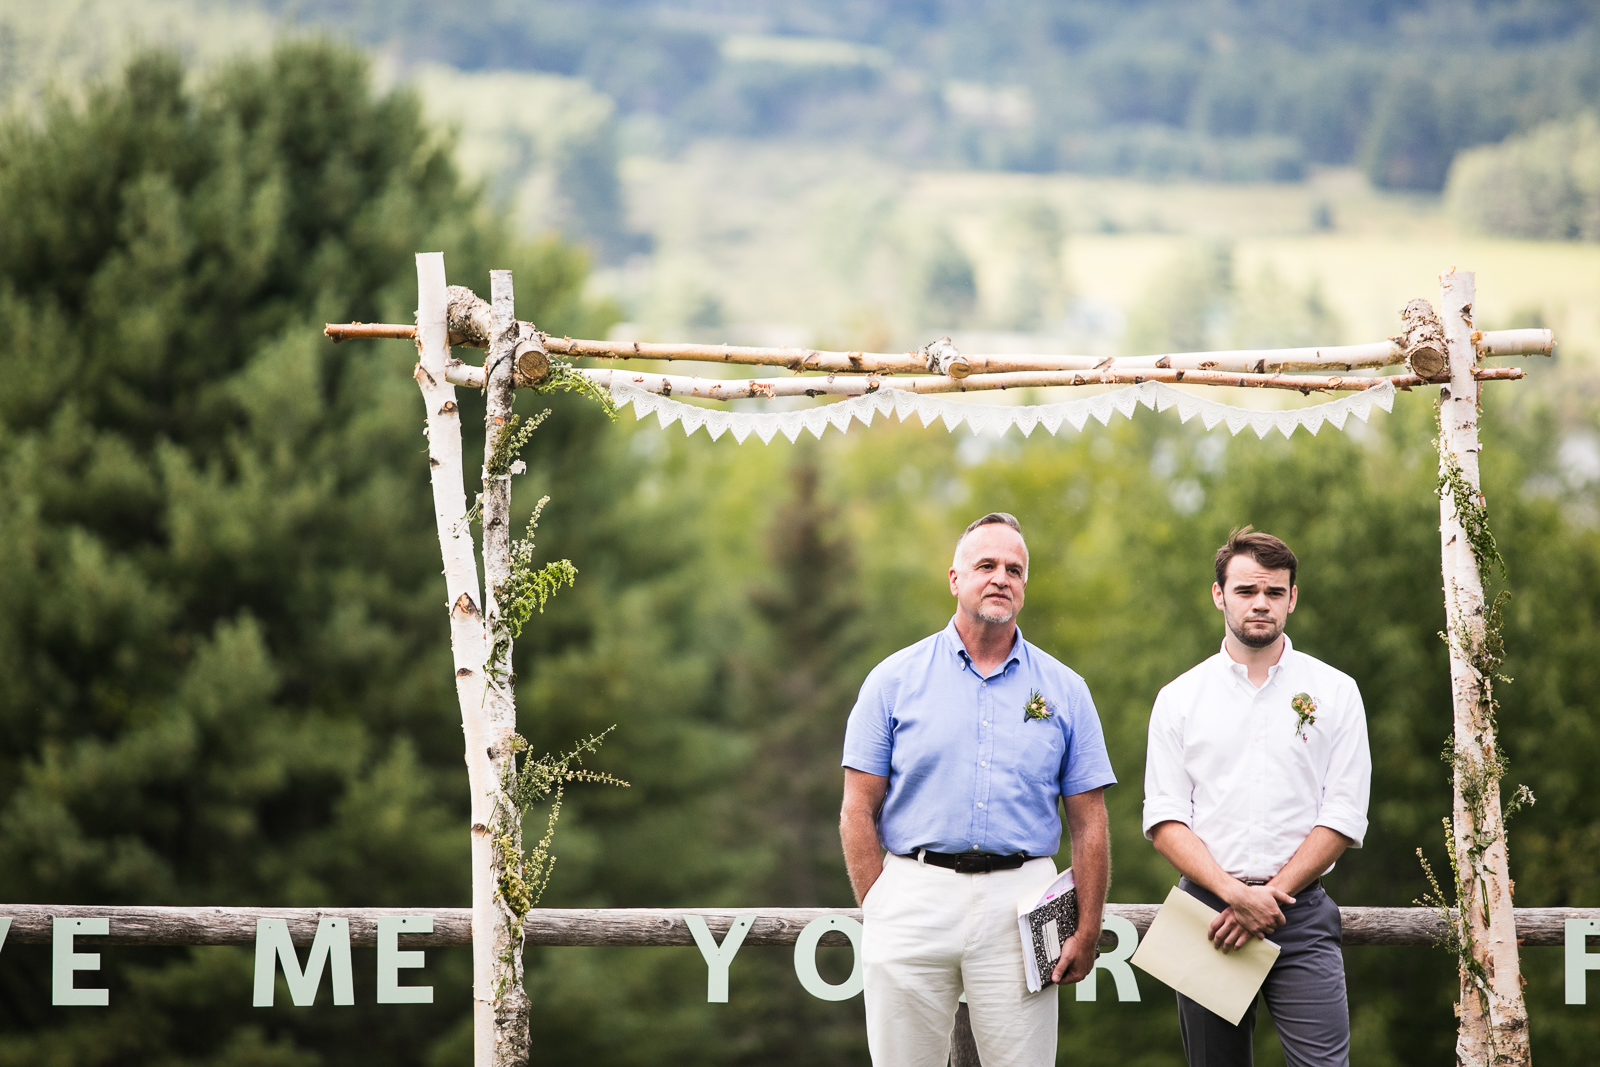 Eve Event photography captures the moment before the bride walks down the aisle at this perfect vermont wedding.